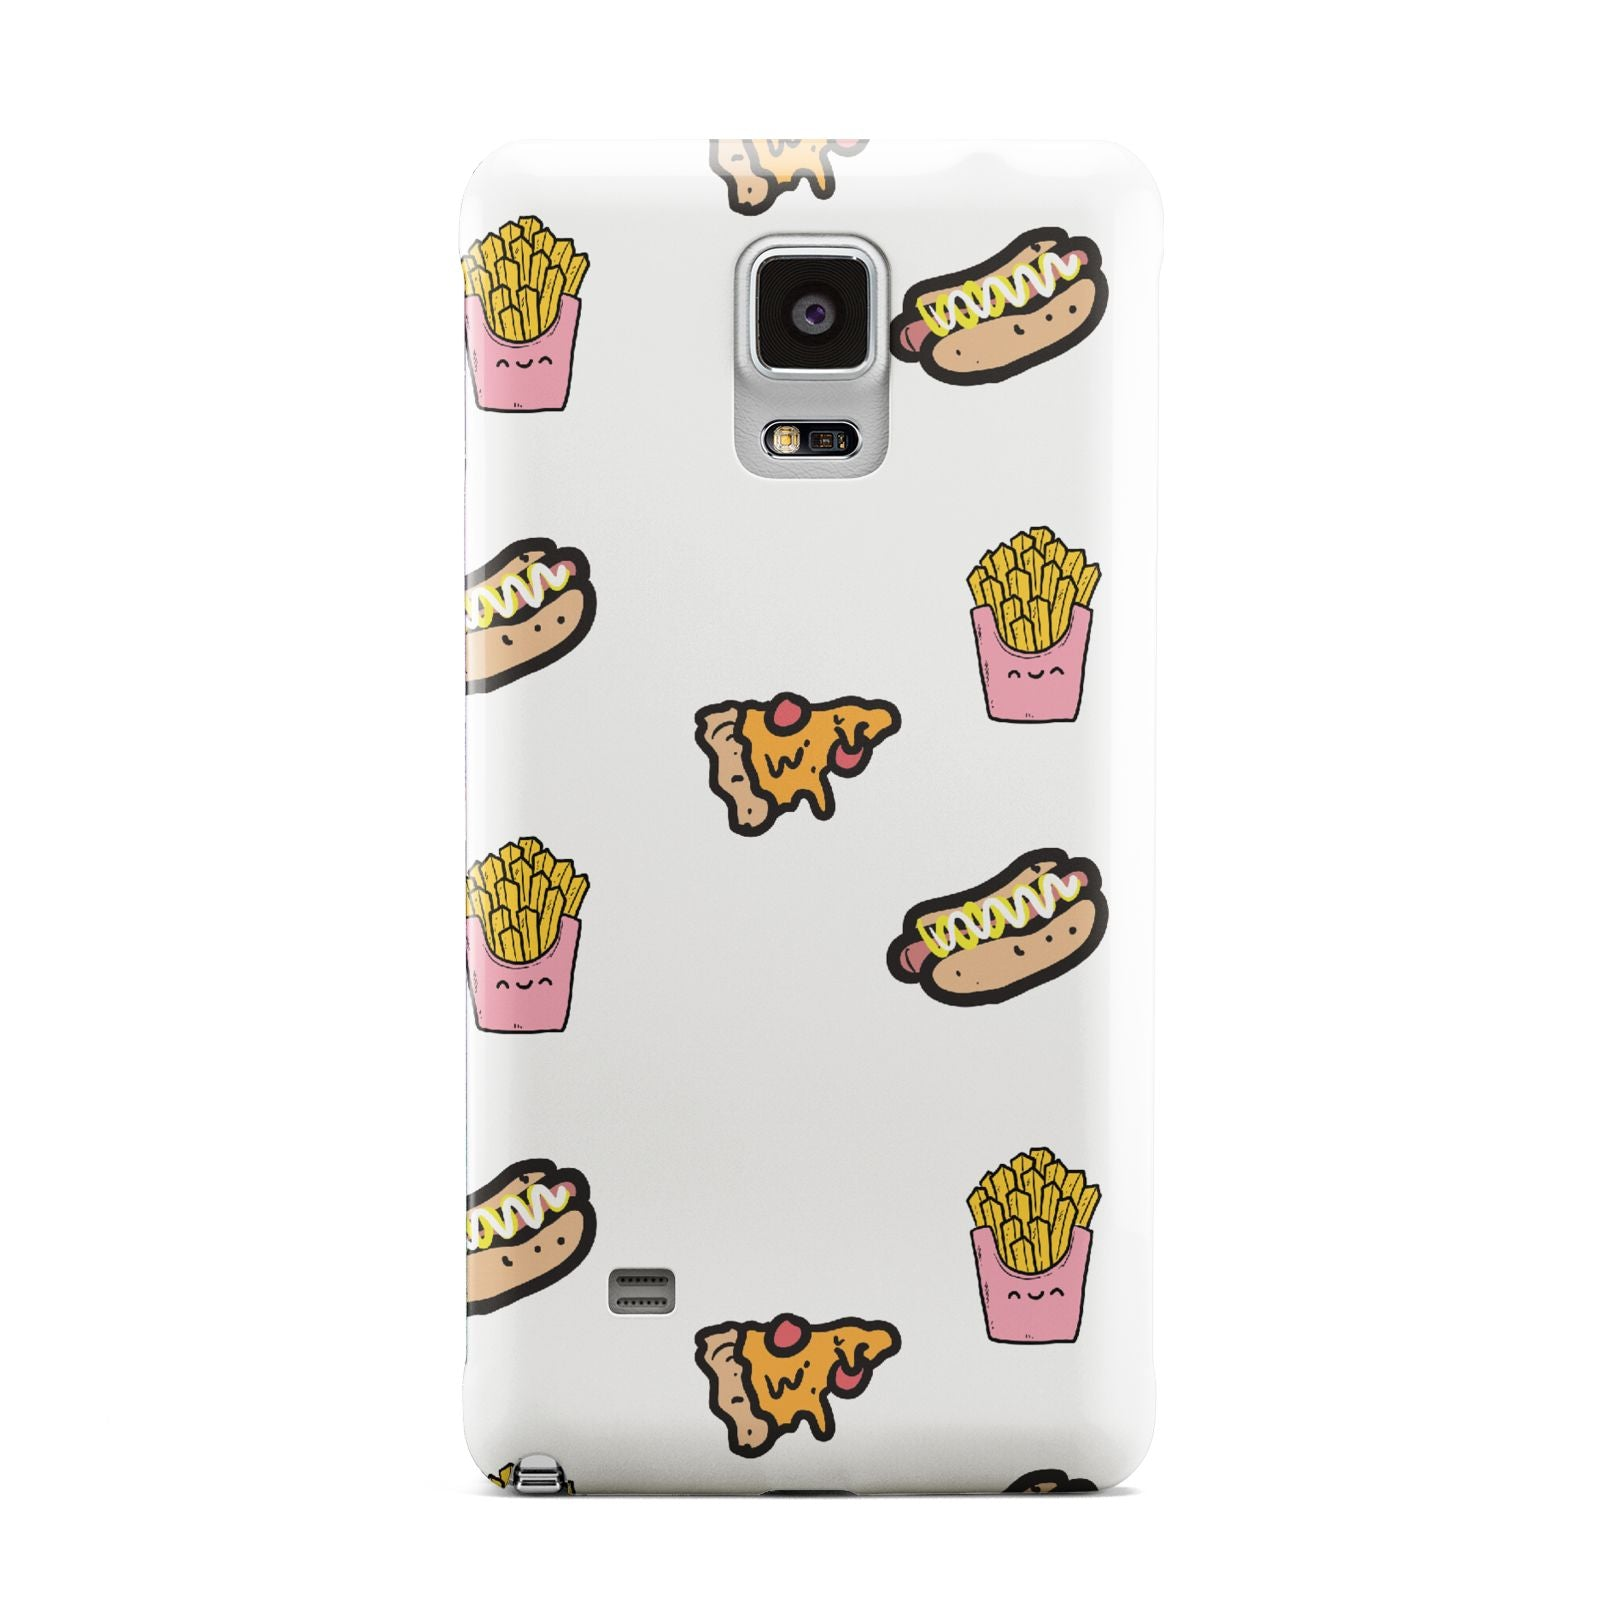 Fries Pizza Hot Dog Samsung Galaxy Note 4 Case